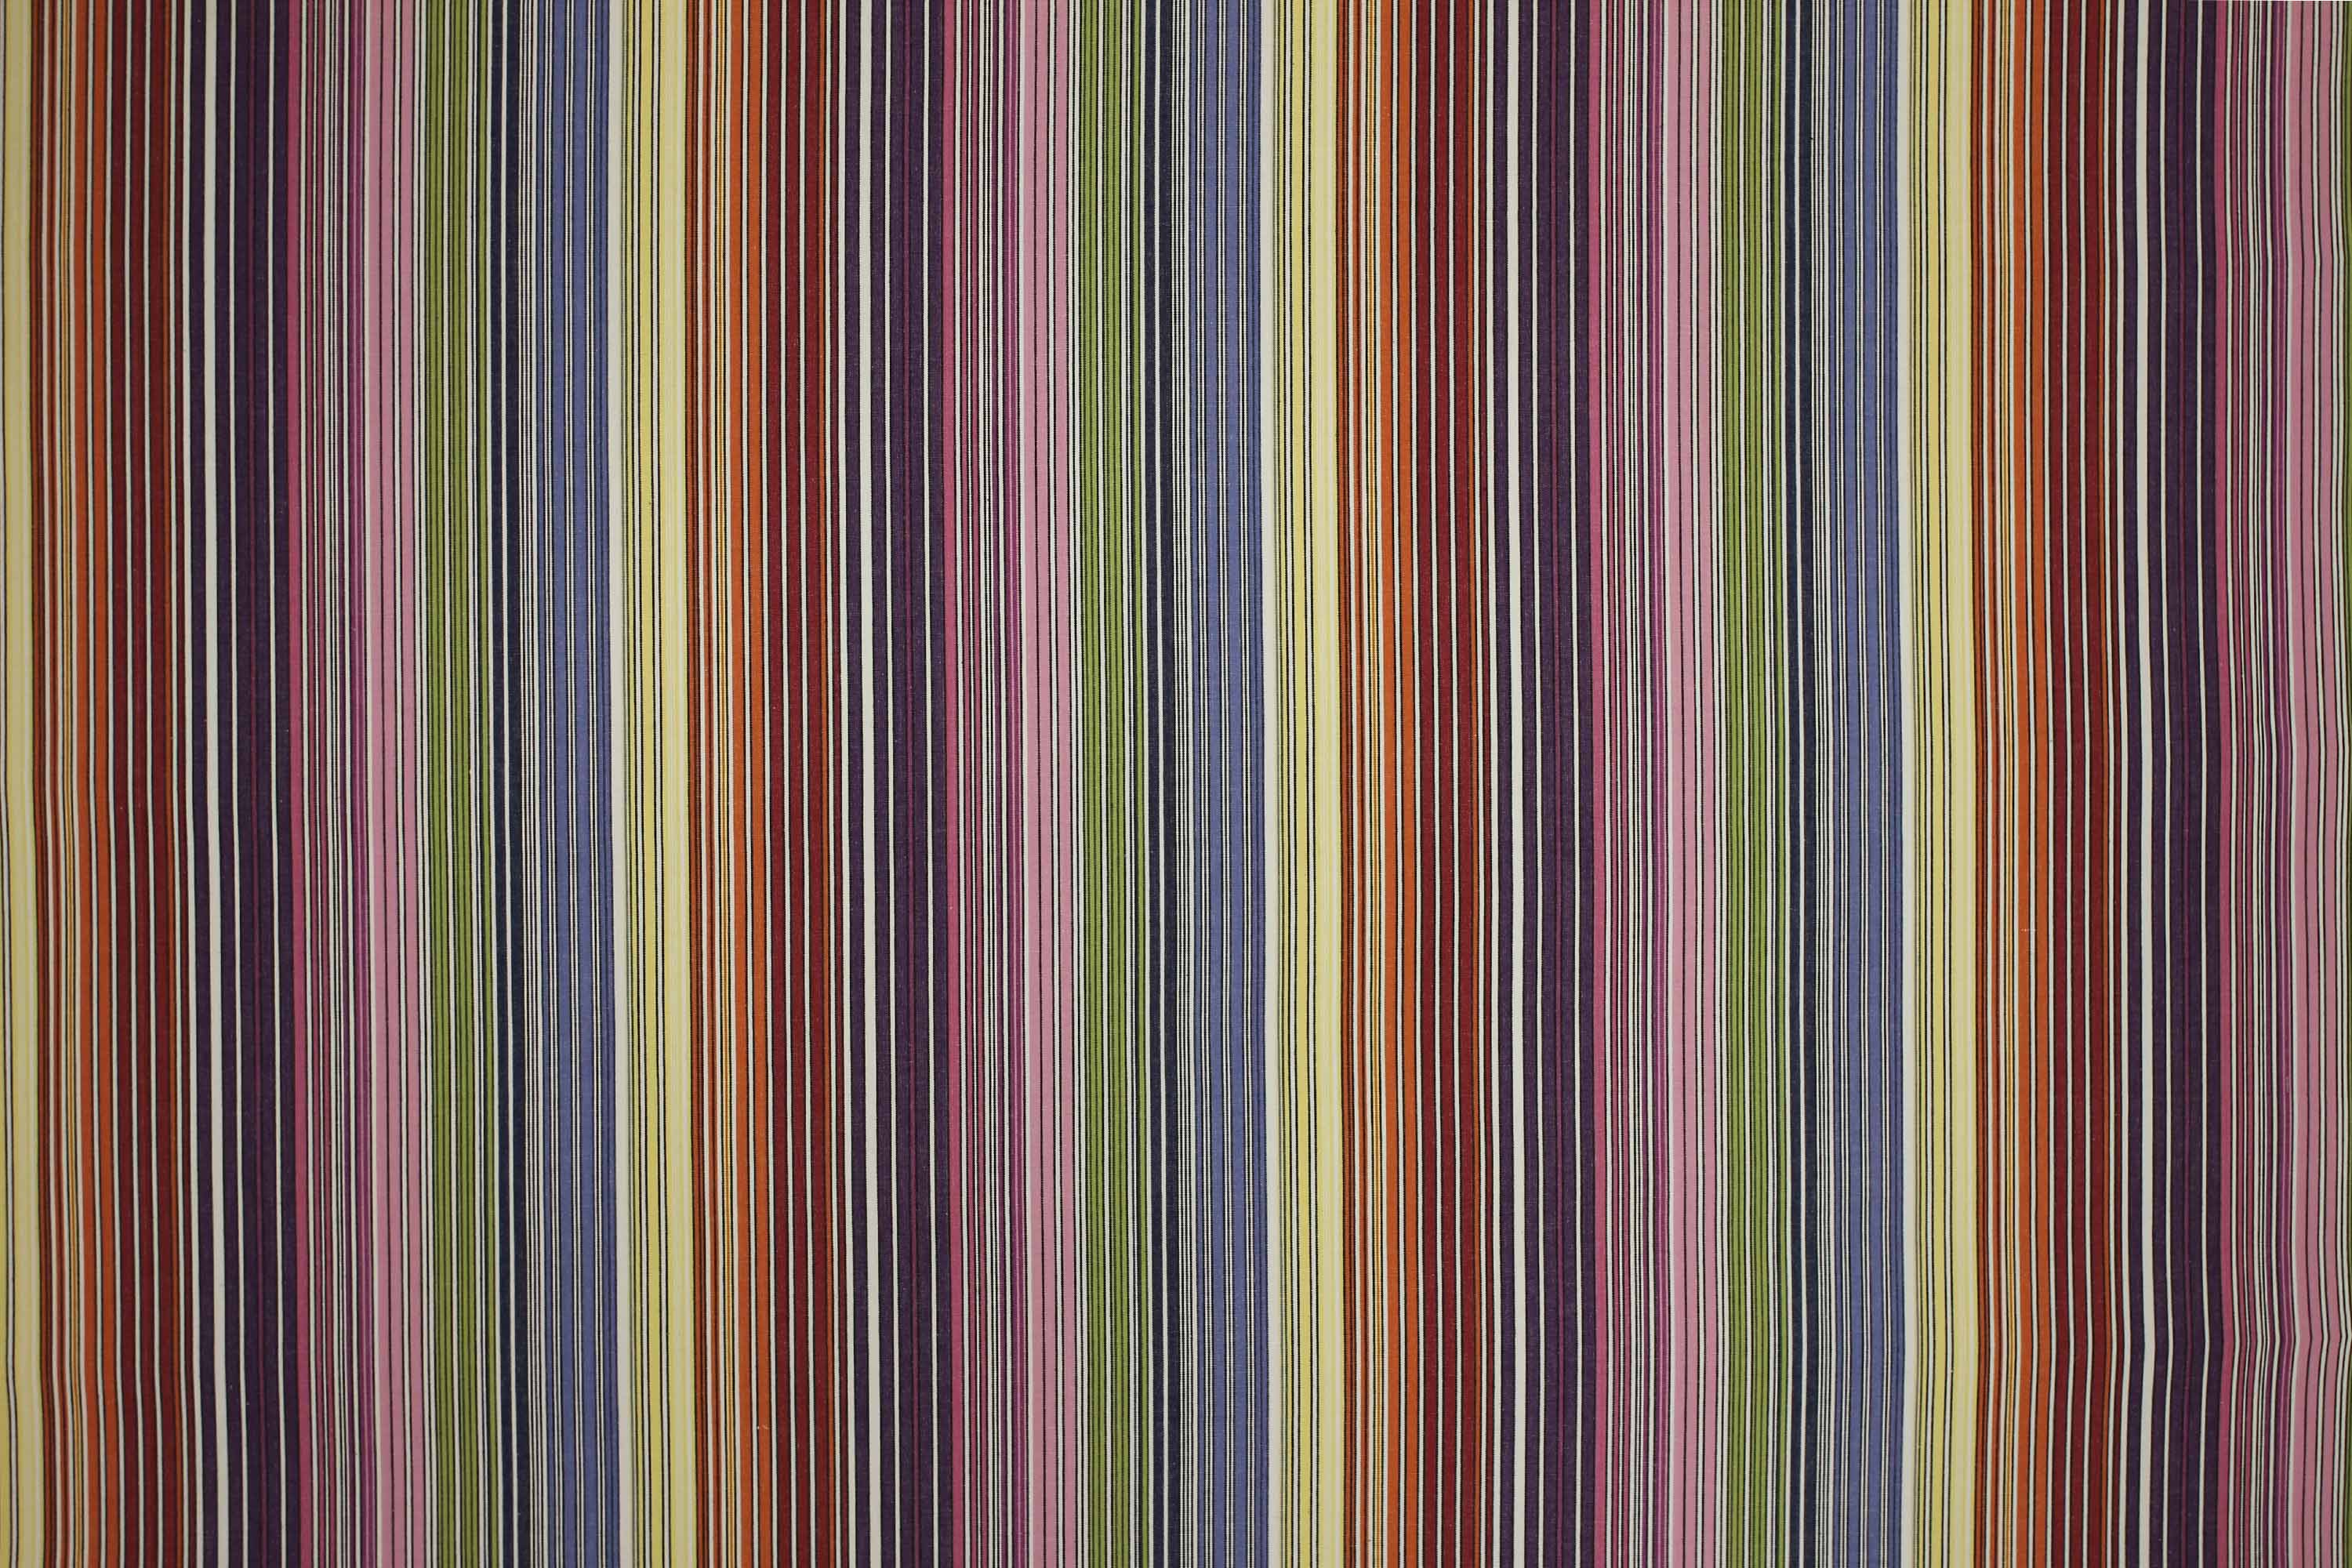 Rainbow and White Striped Fabrics | Stripe Fabrics | Striped Curtain Fabrics | Upholstery Fabrics | Rhumba Stripe